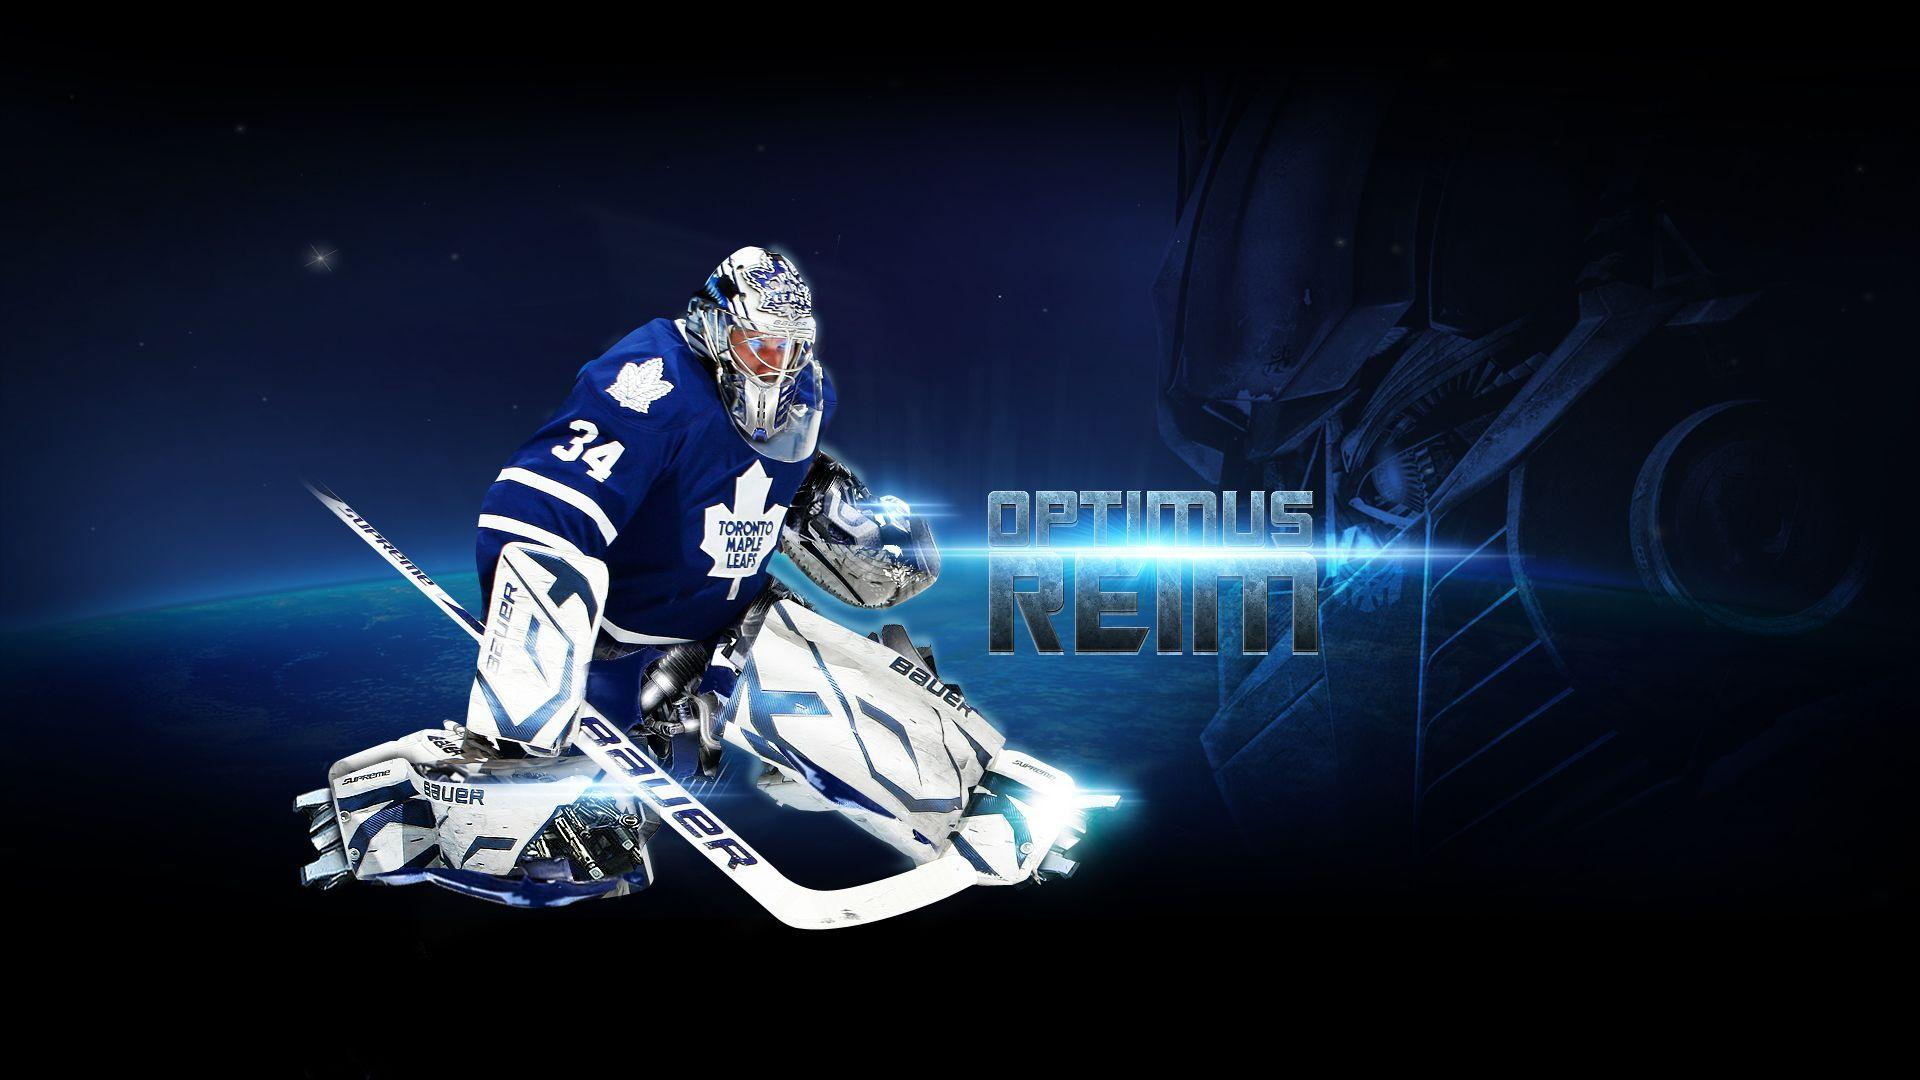 NHL Toronto Maple Leafs Optimus Reim wallpapers HD 2016 in Hockey